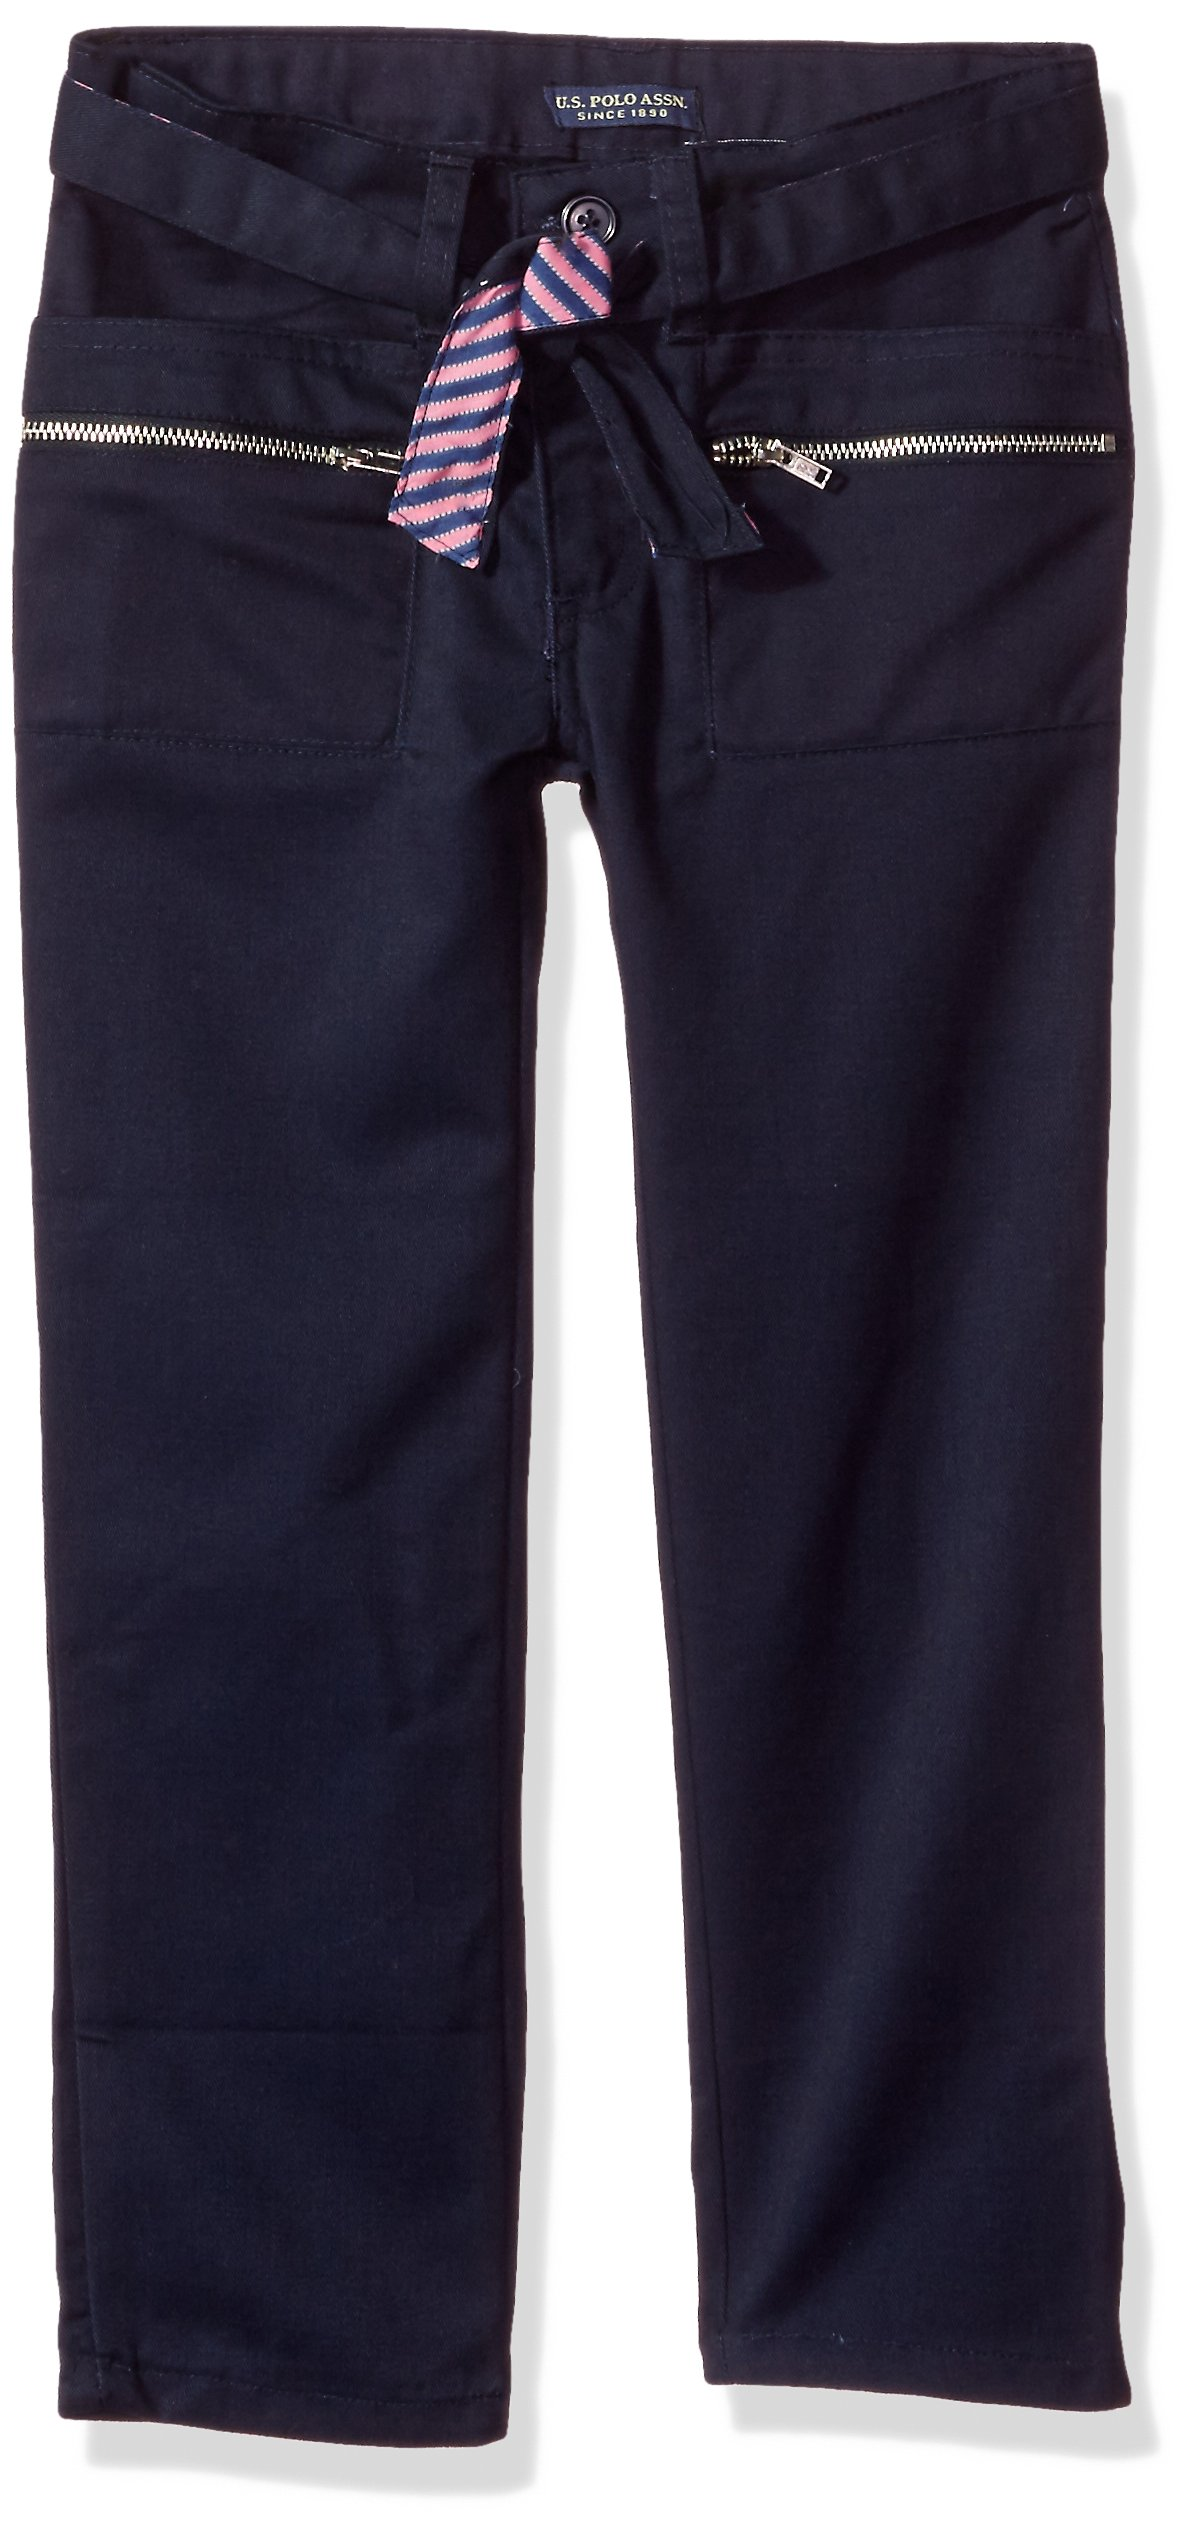 U.S. Polo Assn. Big Girls' Twill Pant (More Styles Available), Navy-IHVDH, 10